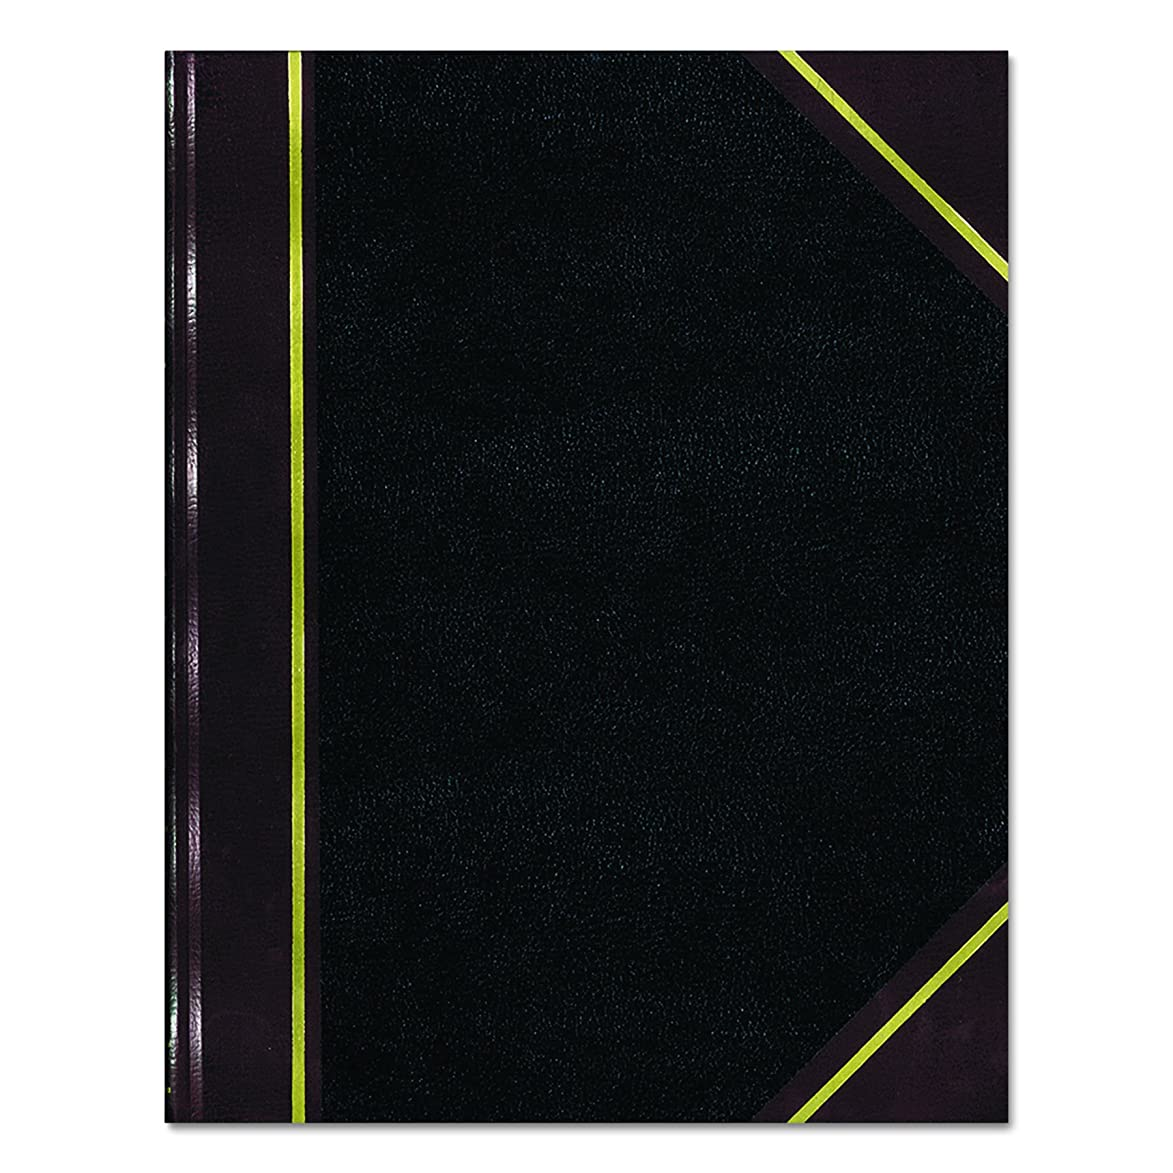 NATIONAL Texhide Series Record Book, Black, 10.375